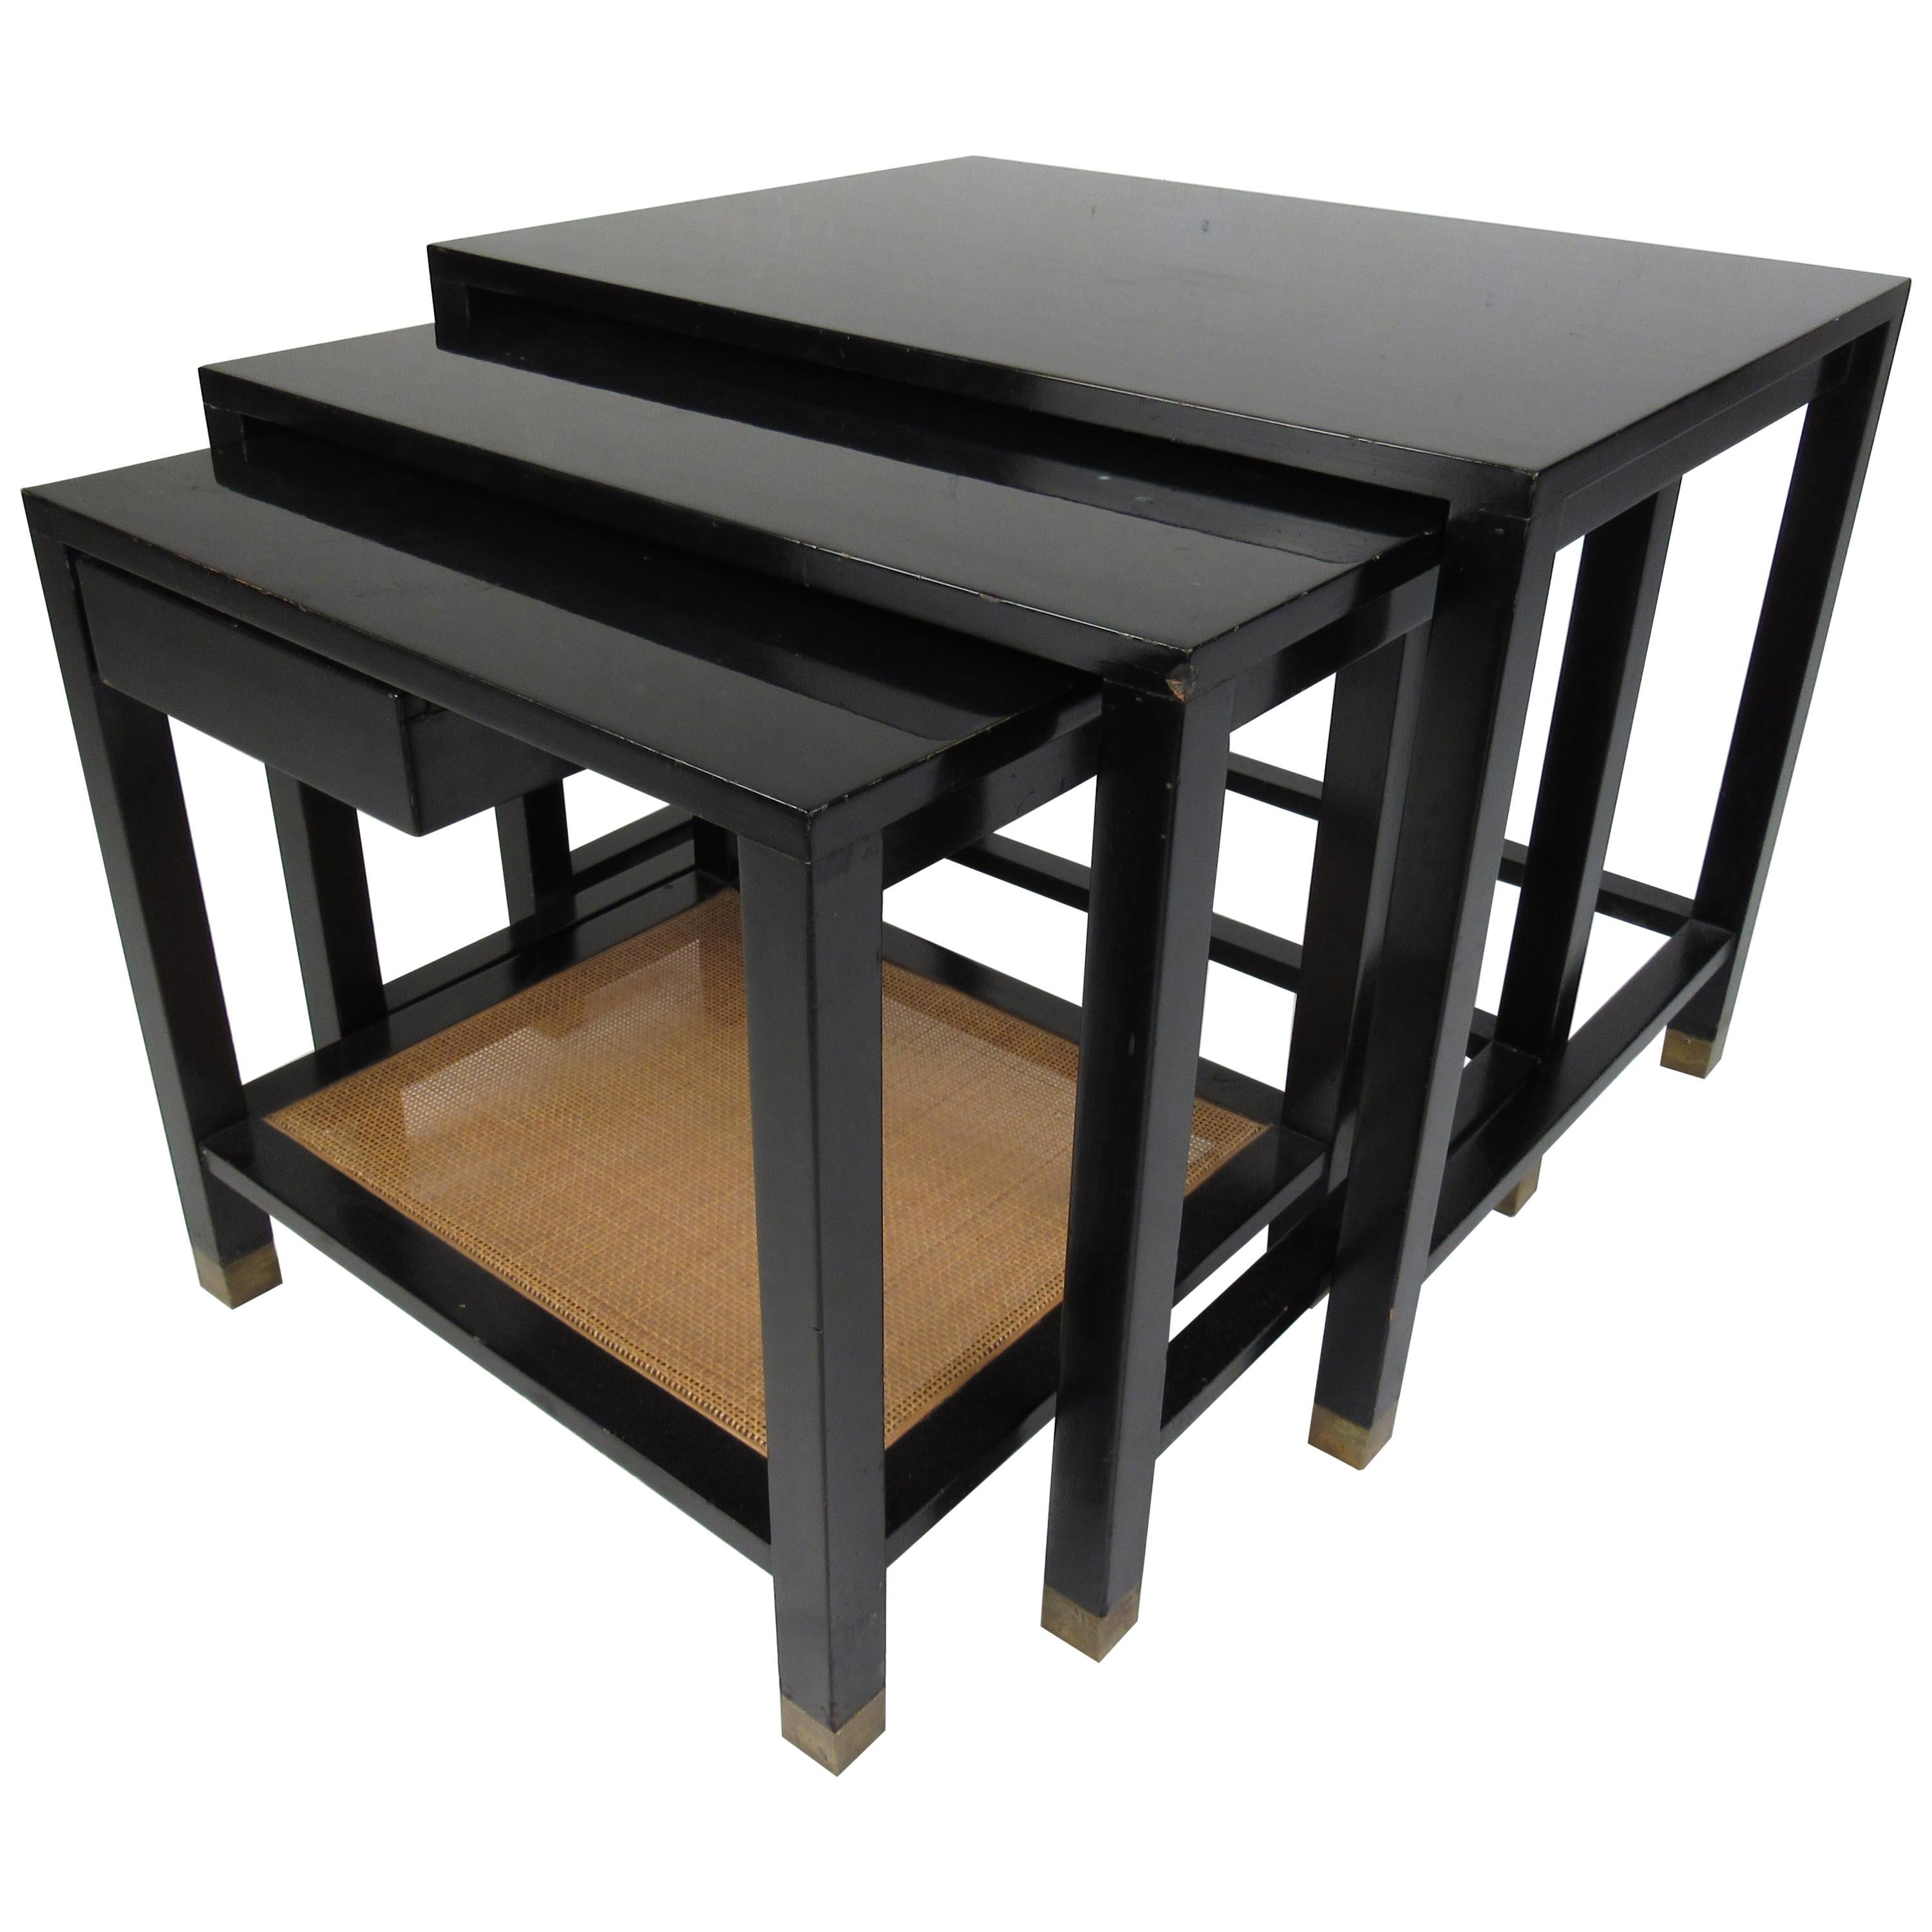 Set of Three Midcentury Dunbar Style Black Lacquer Nesting Tables